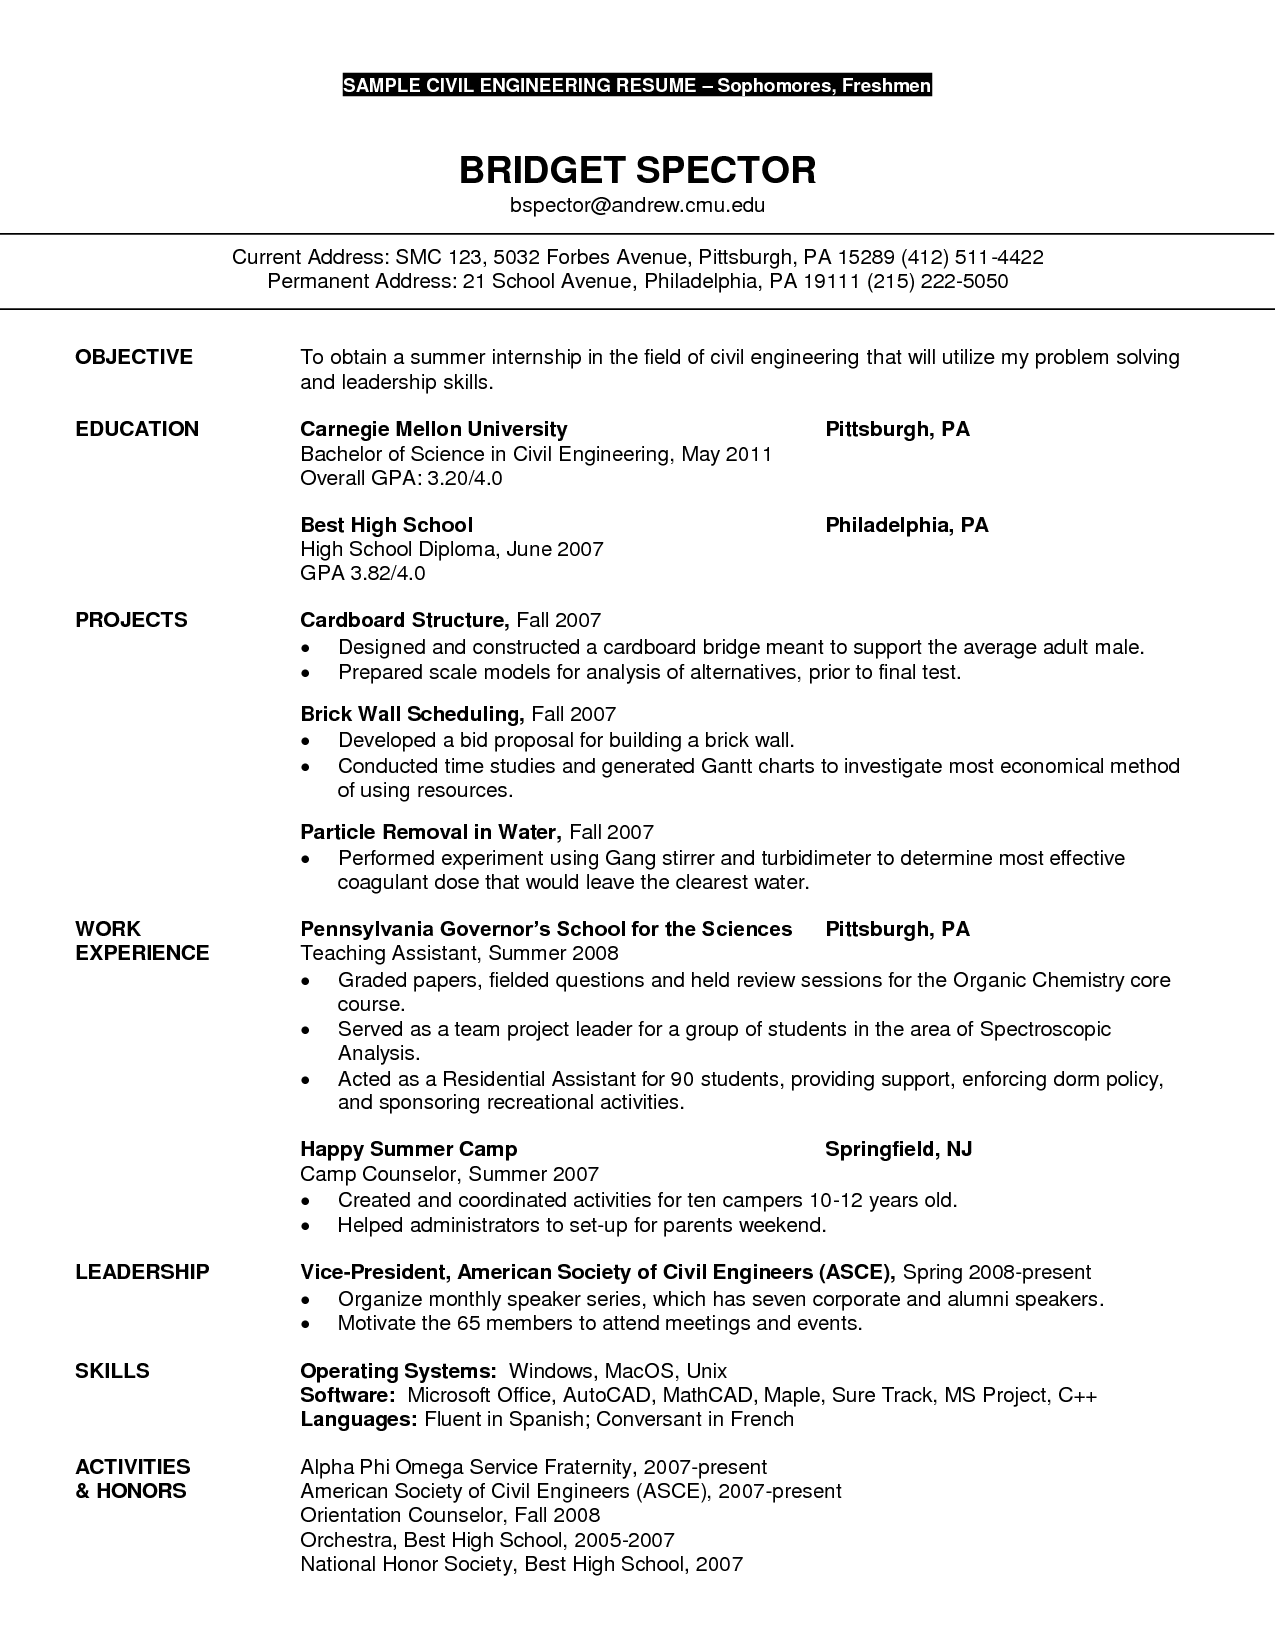 Sample Resume For Fresher Civil Engineer Civil Engineer Resume Sample Http Resumecareer